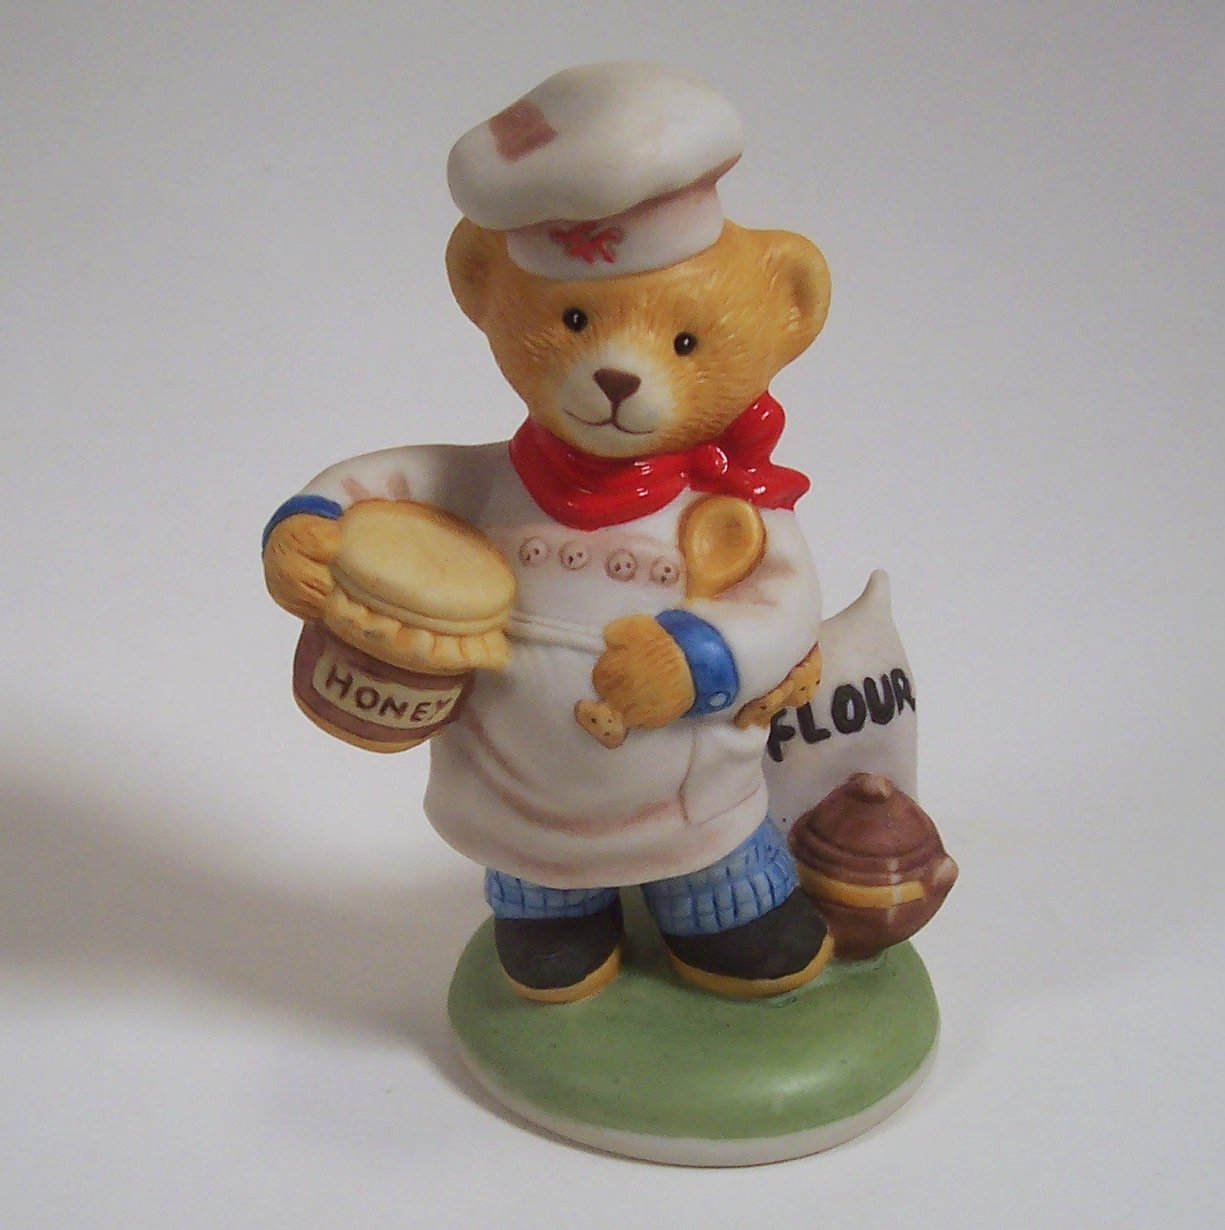 Chef Pierre Teddington Hotel 1986 Franklin Mint Porcelain Figurine